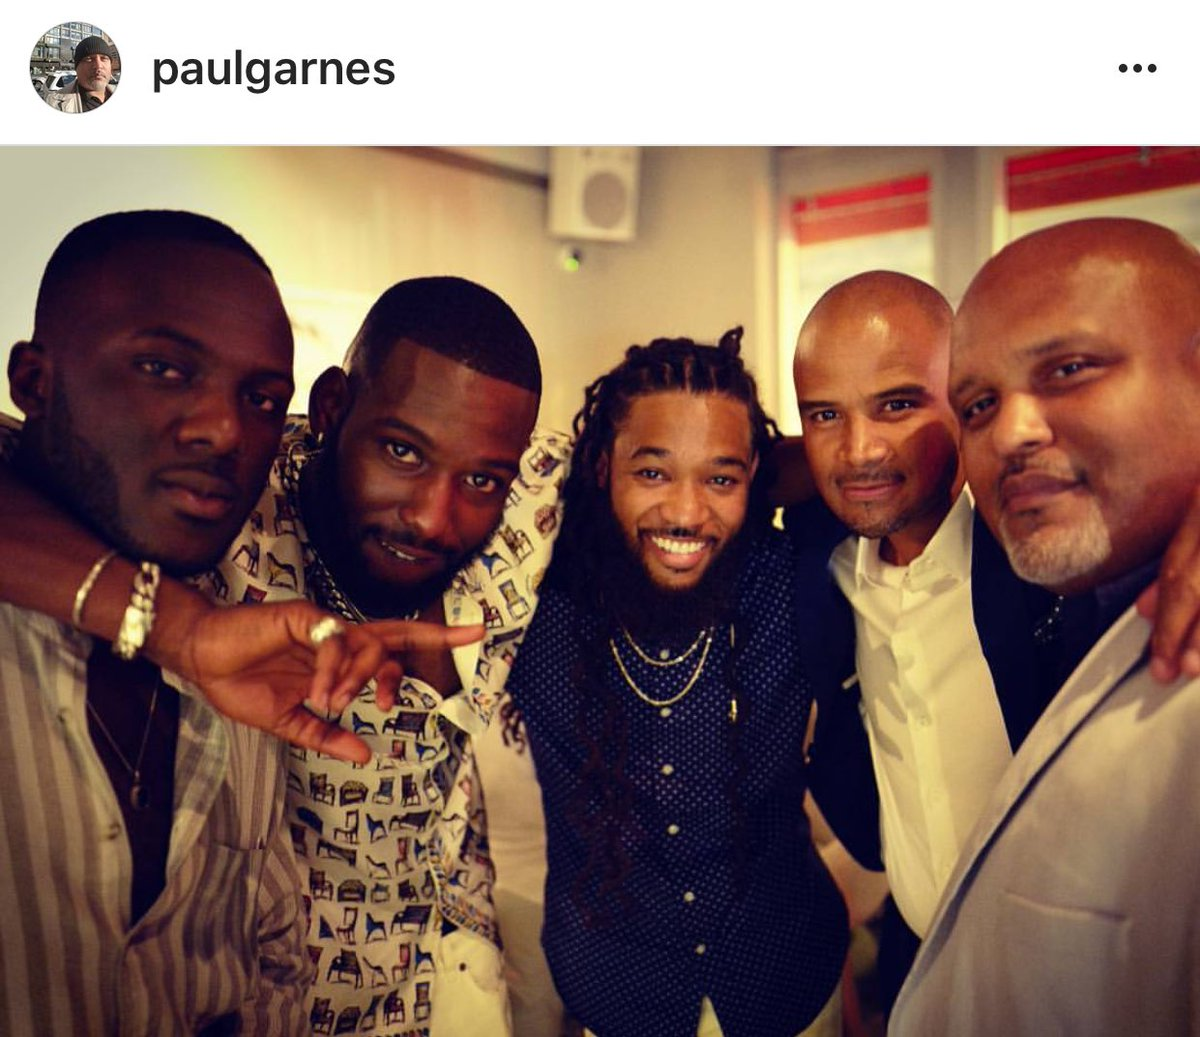 &quot;Had a great time with the #QueenSugar cast this weekend at #ABFF &quot; Repost Producer @goodwon #NicePic <br>http://pic.twitter.com/1Fslko8BO8